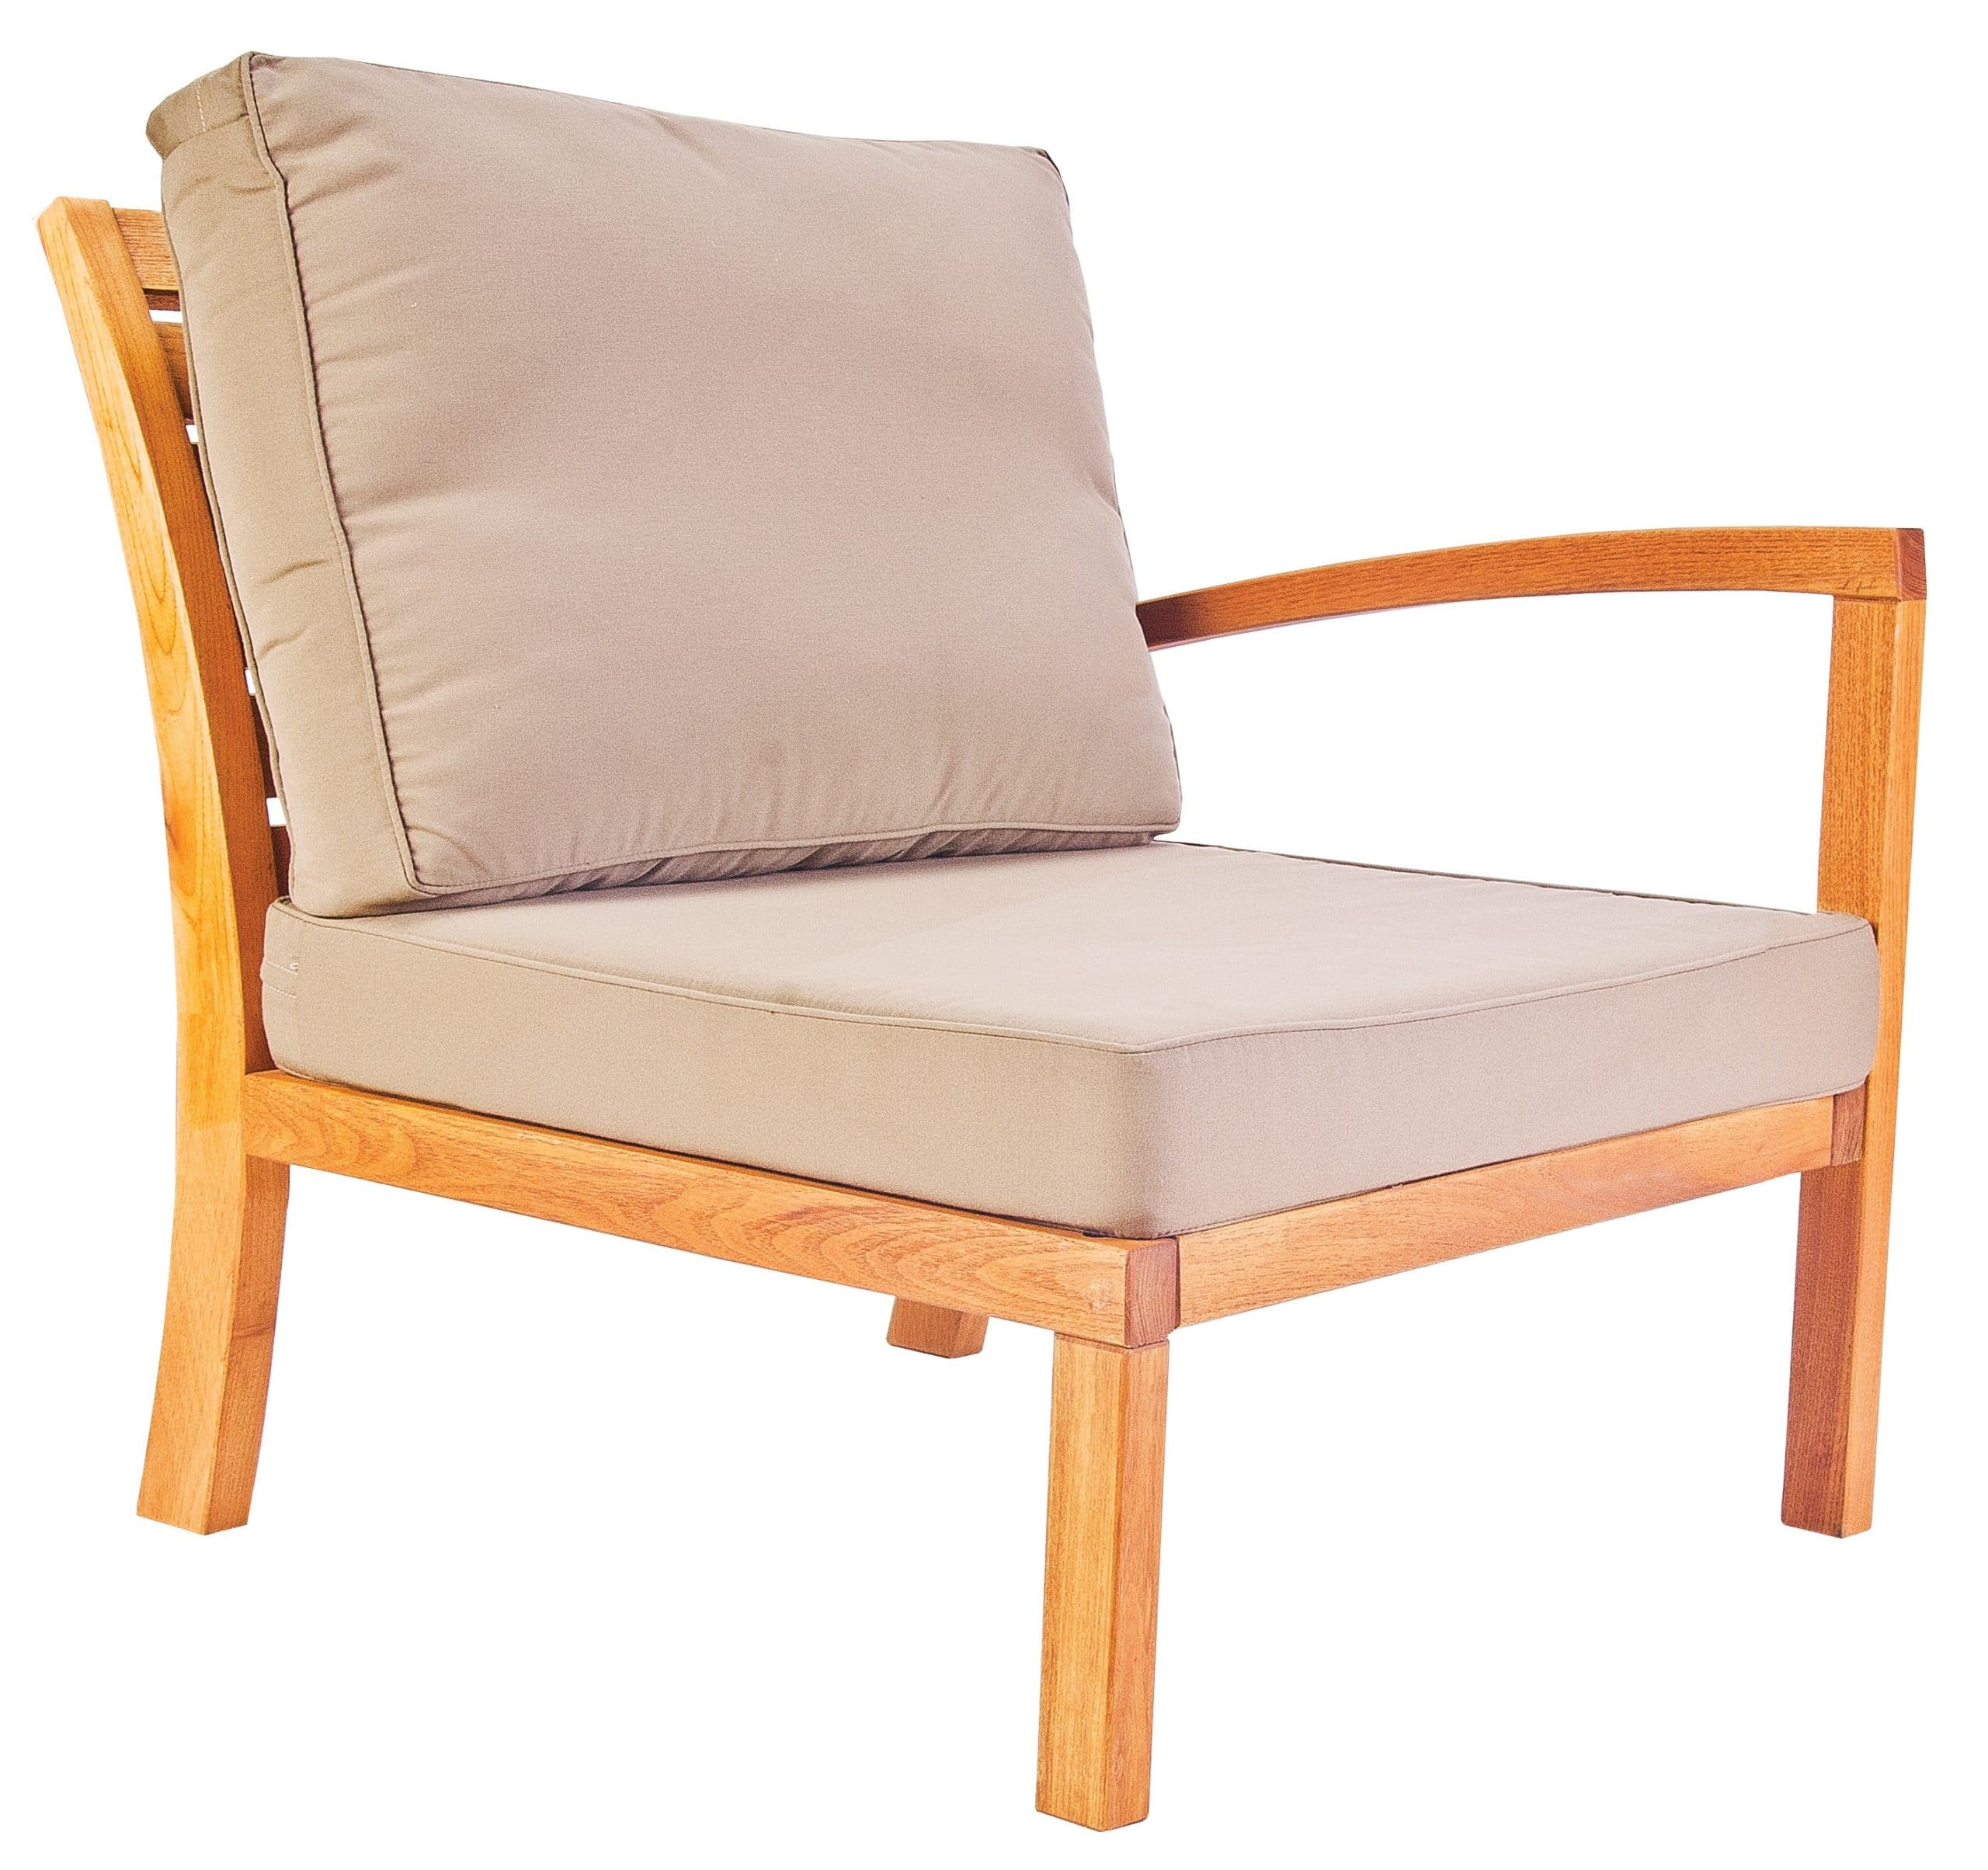 <p>Outdoor Furniture Leisure Collection Vista Armchair with left arm.</p> <p> </p> <p>Comfortable Patio Lounge Set Vista Armchair with left arm.</p> <p> </p> <p>Modern Leisure indoor or outdoor Hotel Coffee Lounge Set includes Armchairs, Chair, Corner Settee, Footstool and Table. Suits a variety of locations and settings including outdoor terraces, hotel reception areas and foyers with unlimited configuration options available.</p>